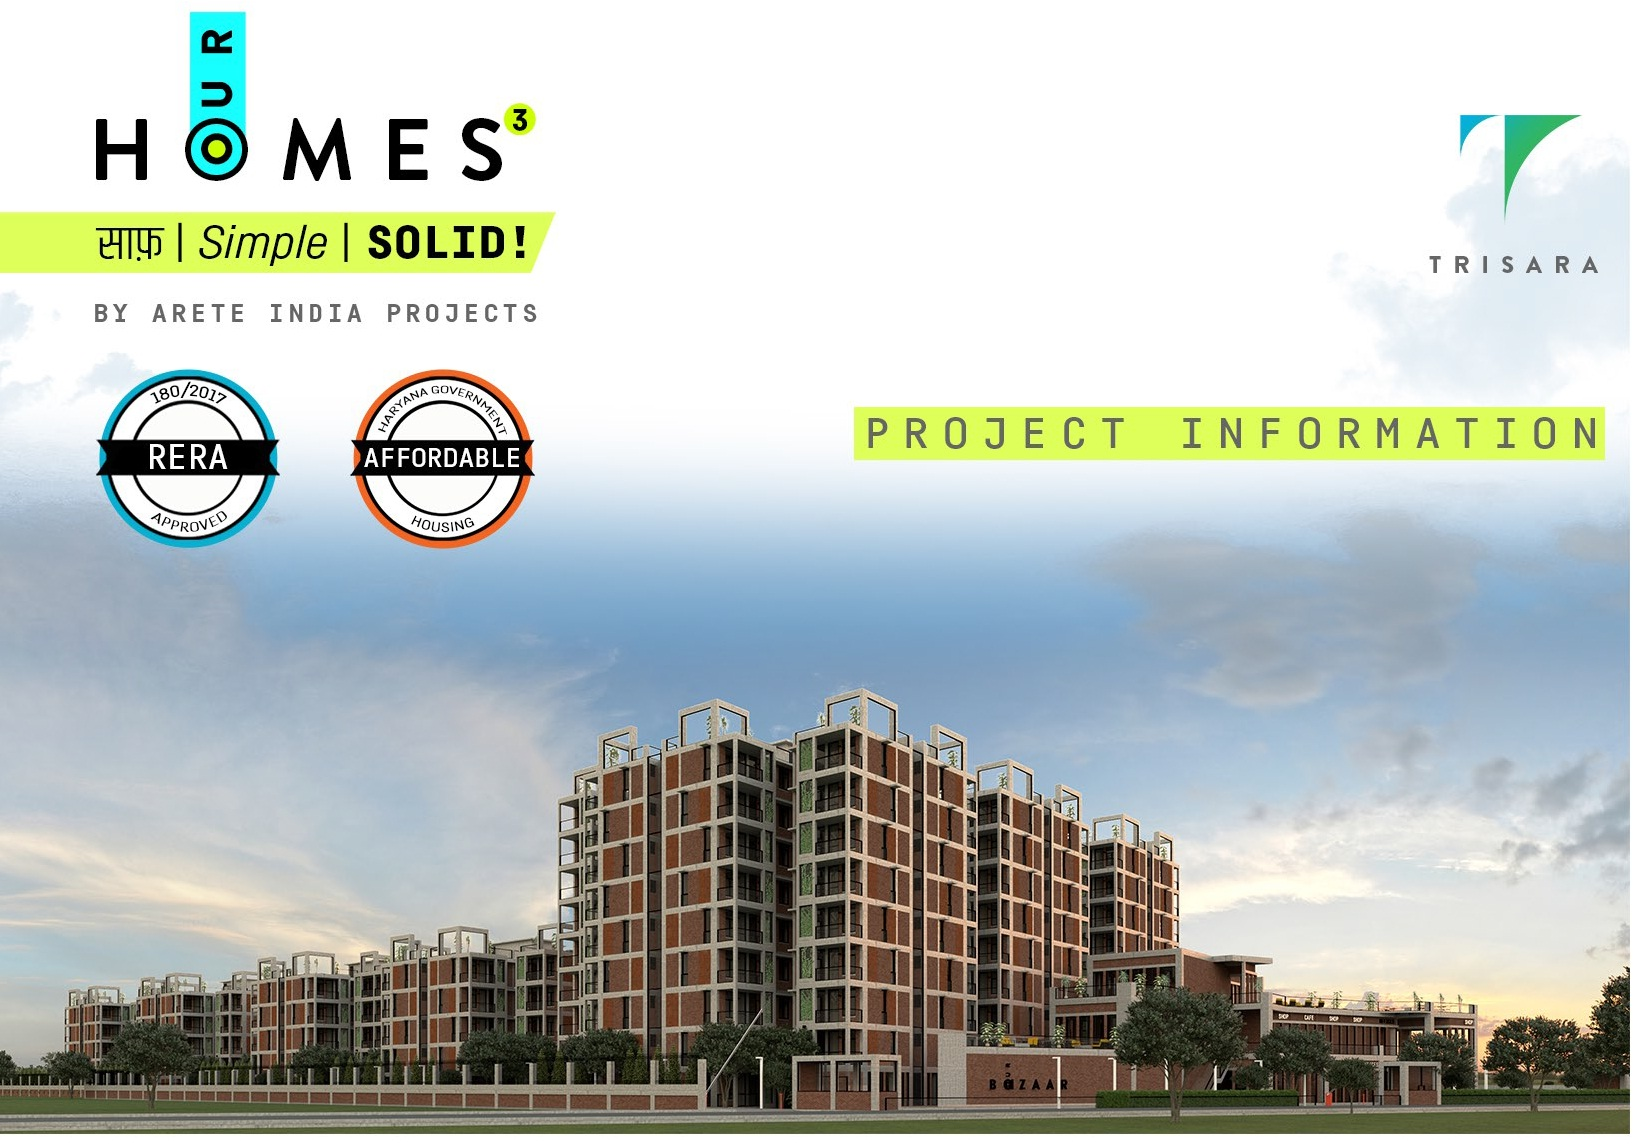 Trisara Our Homes in Sector 6 – Sohna, Gurgaon